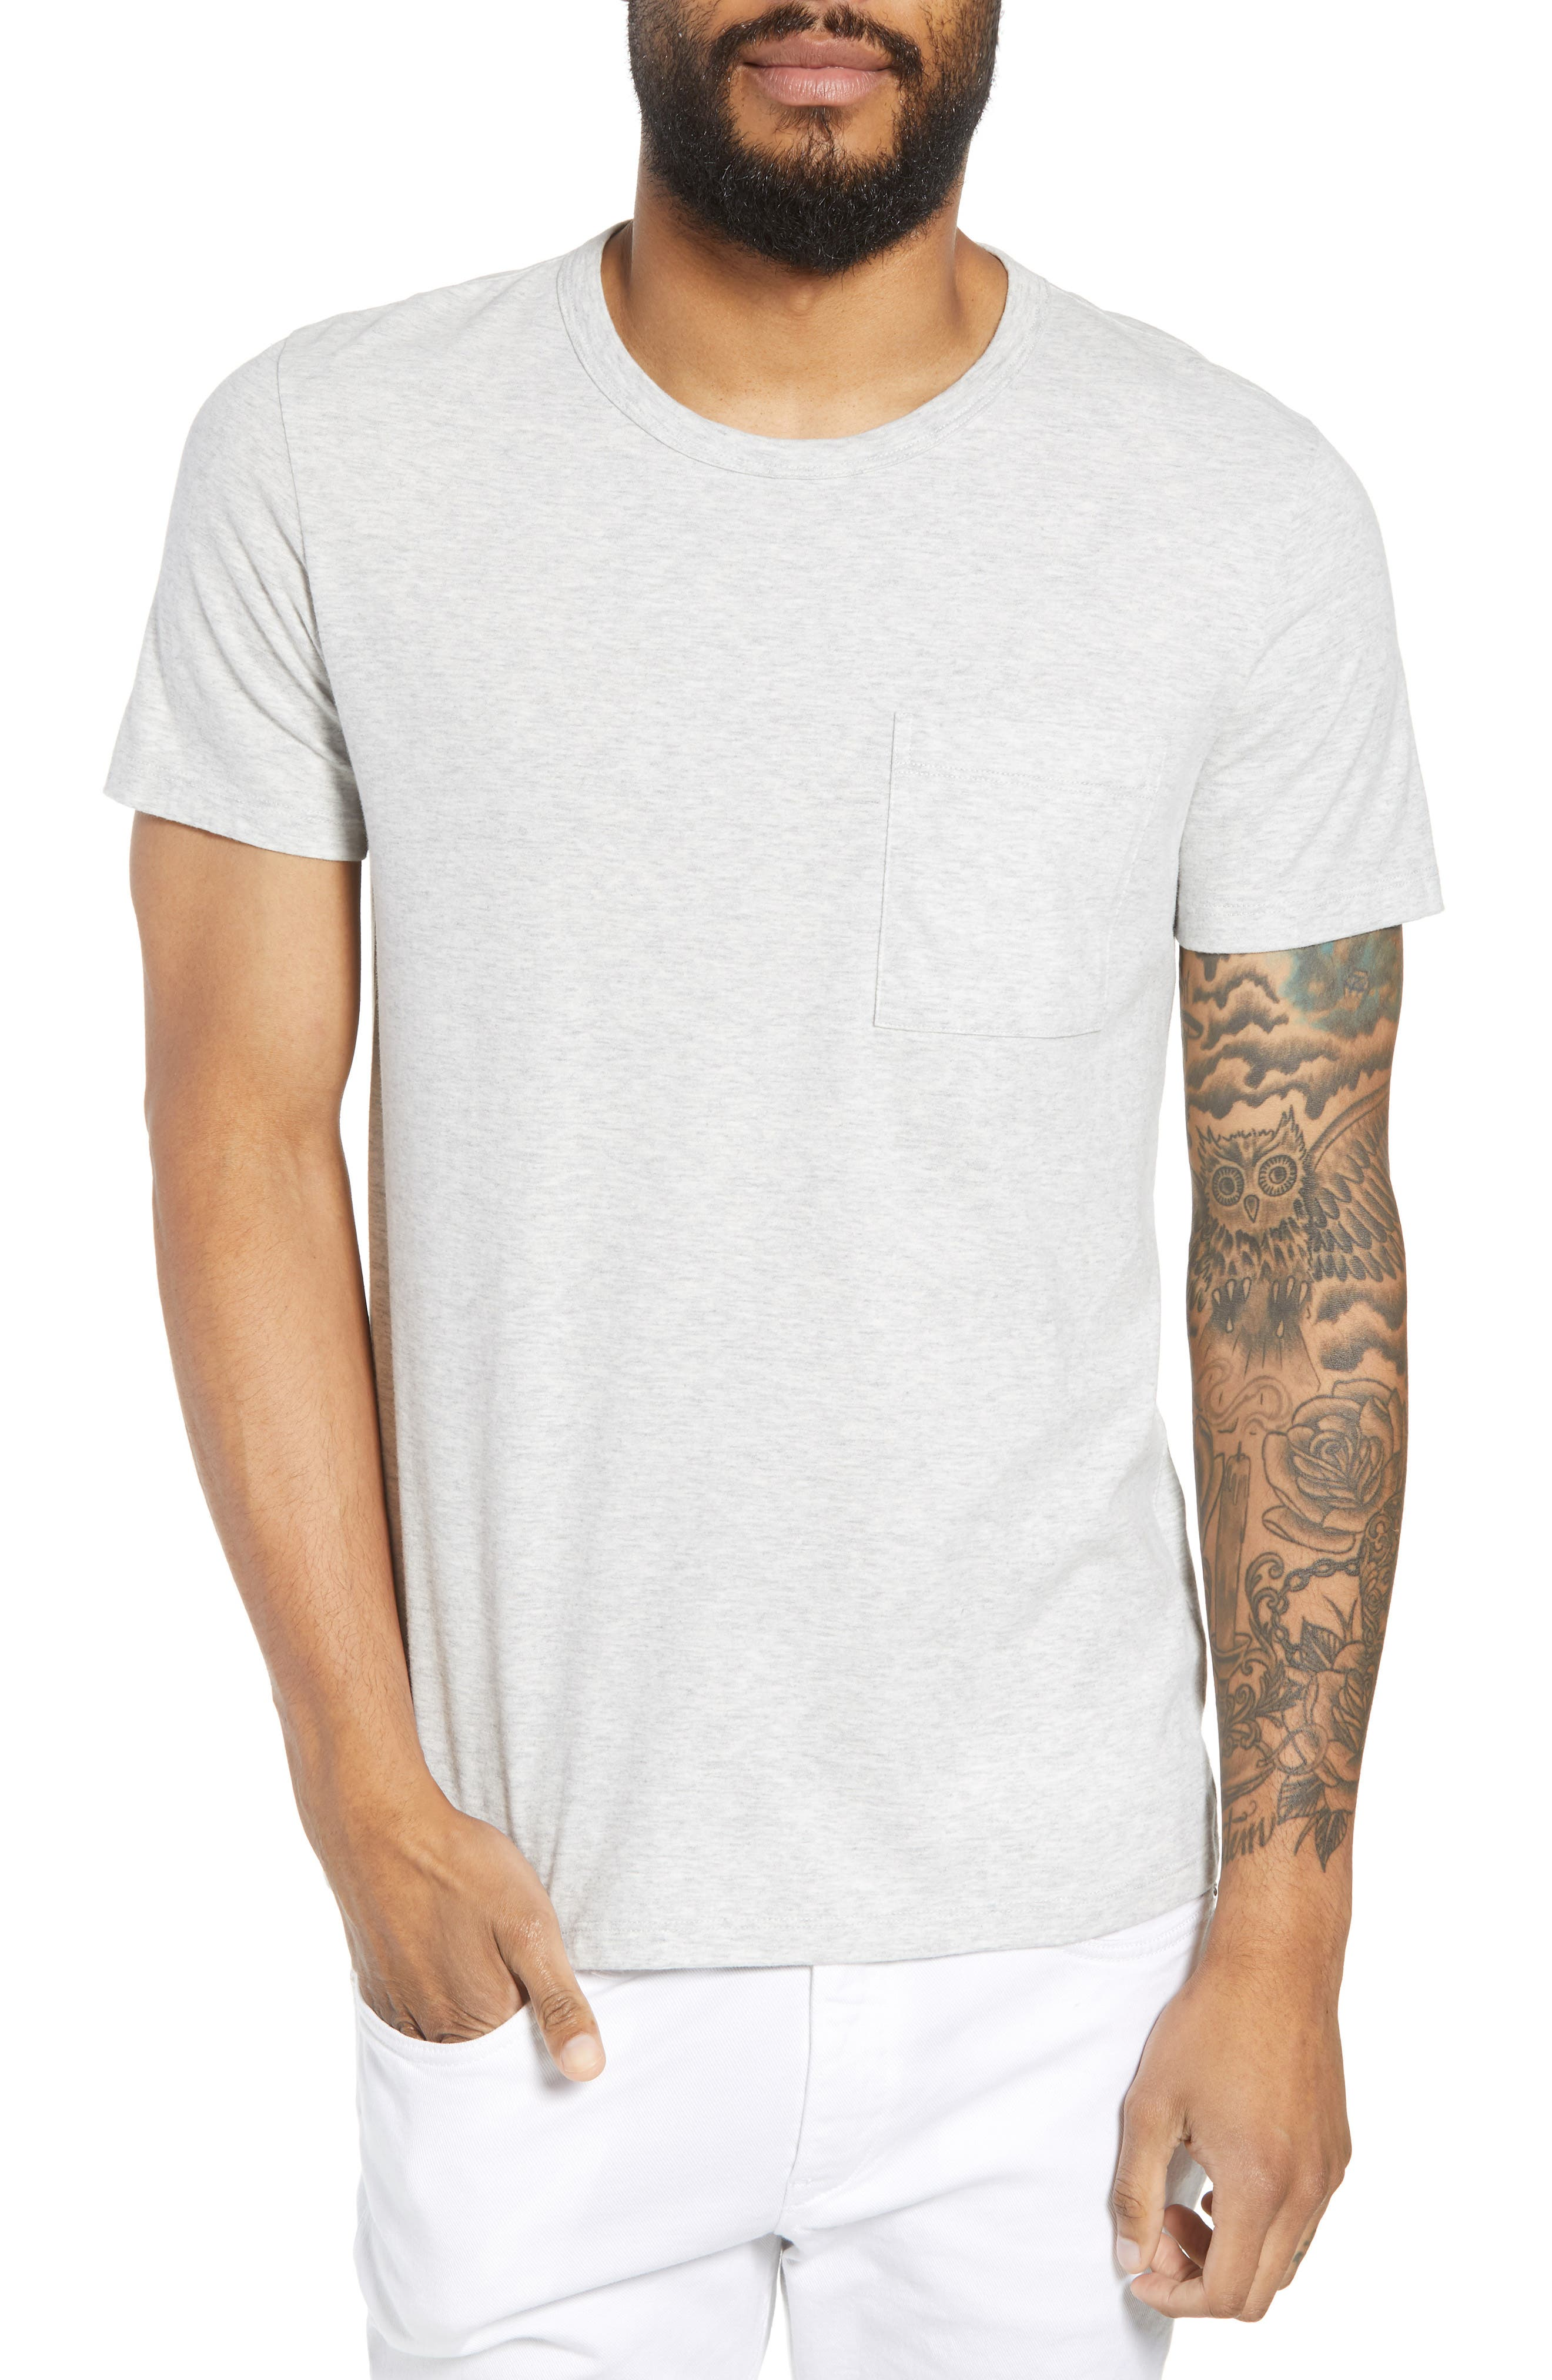 THEORY Essential Pocket T-Shirt, Main, color, 020